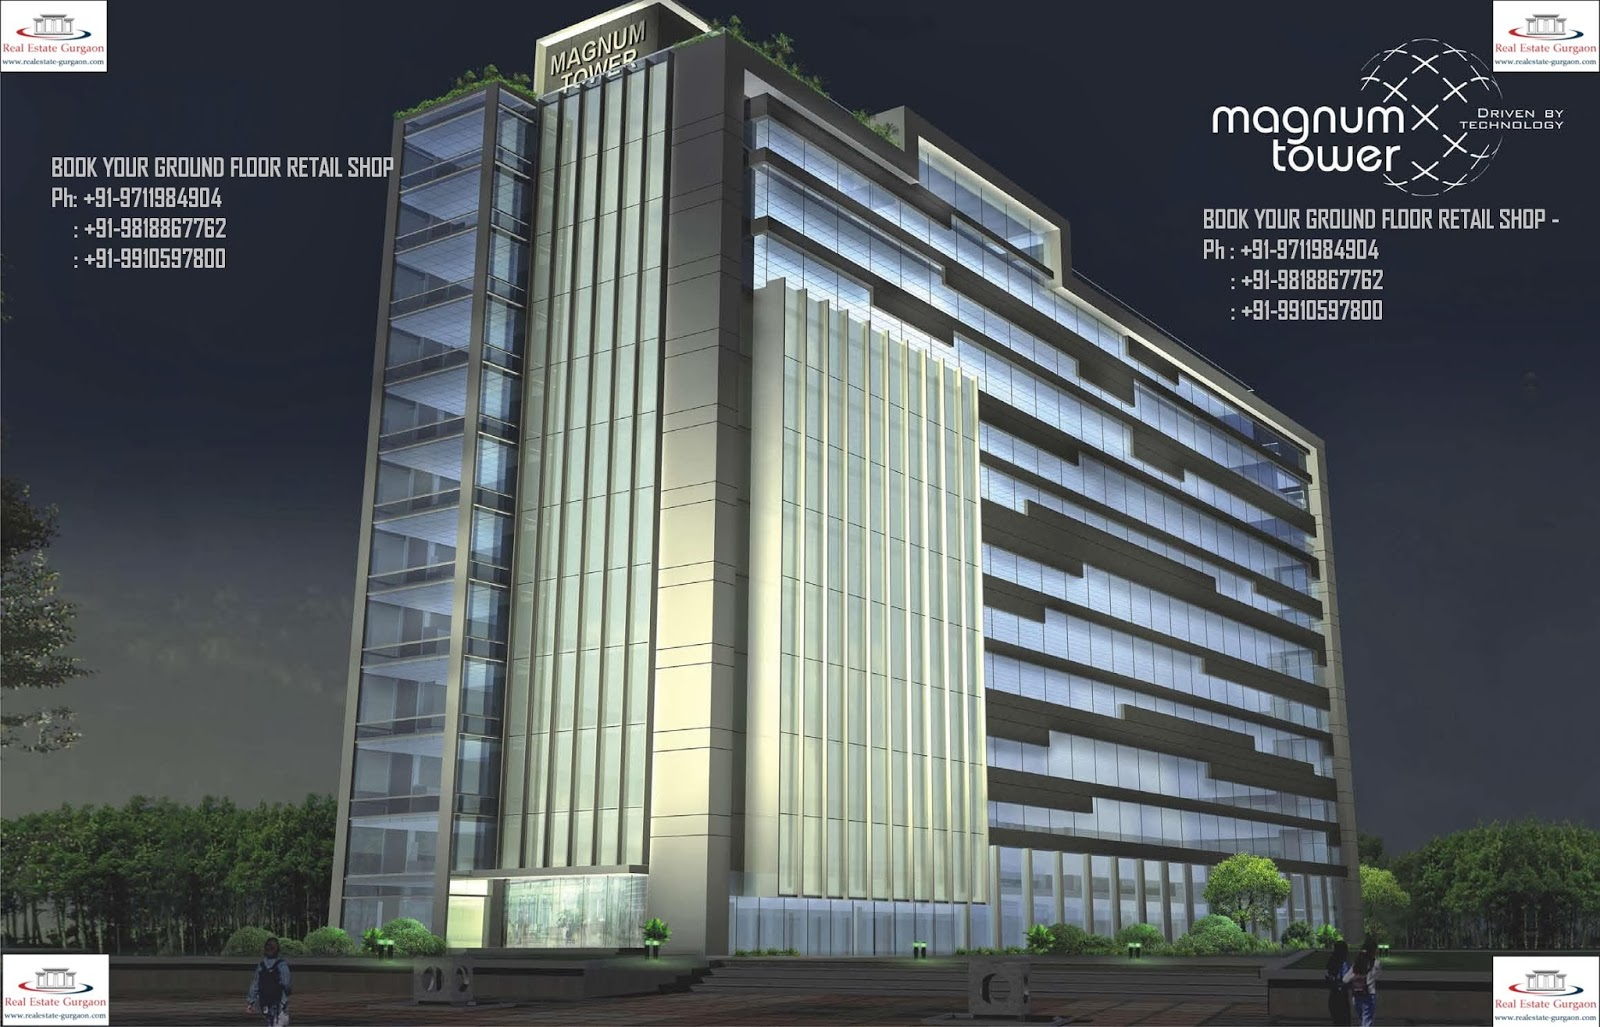 galaxy magnum tower, monnet magnum tower, galaxy-monnet magnum tower, magnum tower sec 58 gurgaon, magnum tower gurgaon